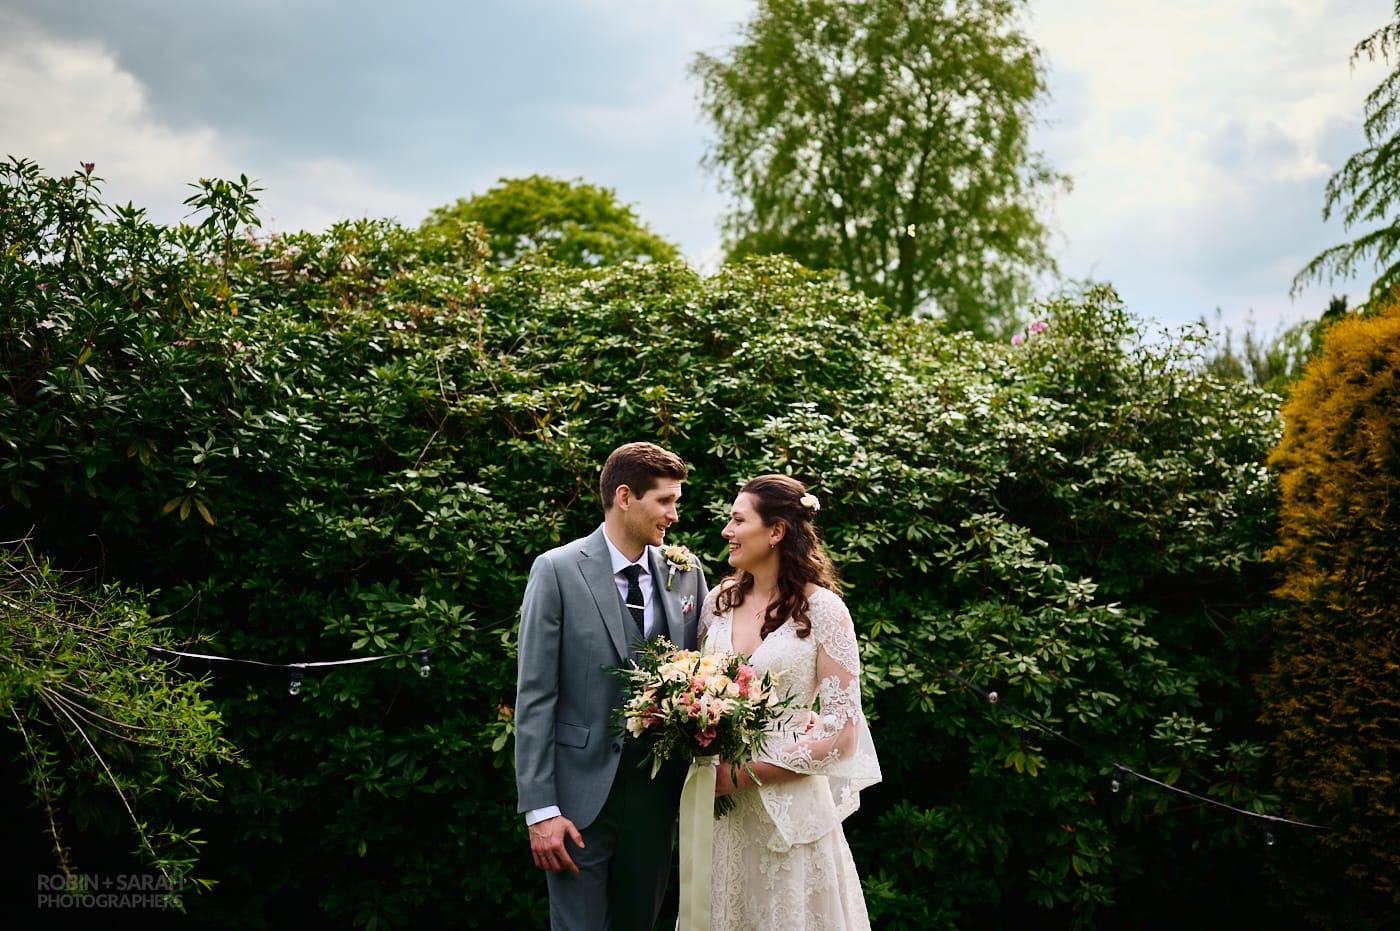 Bride and groom chat to each other in front of large hedge